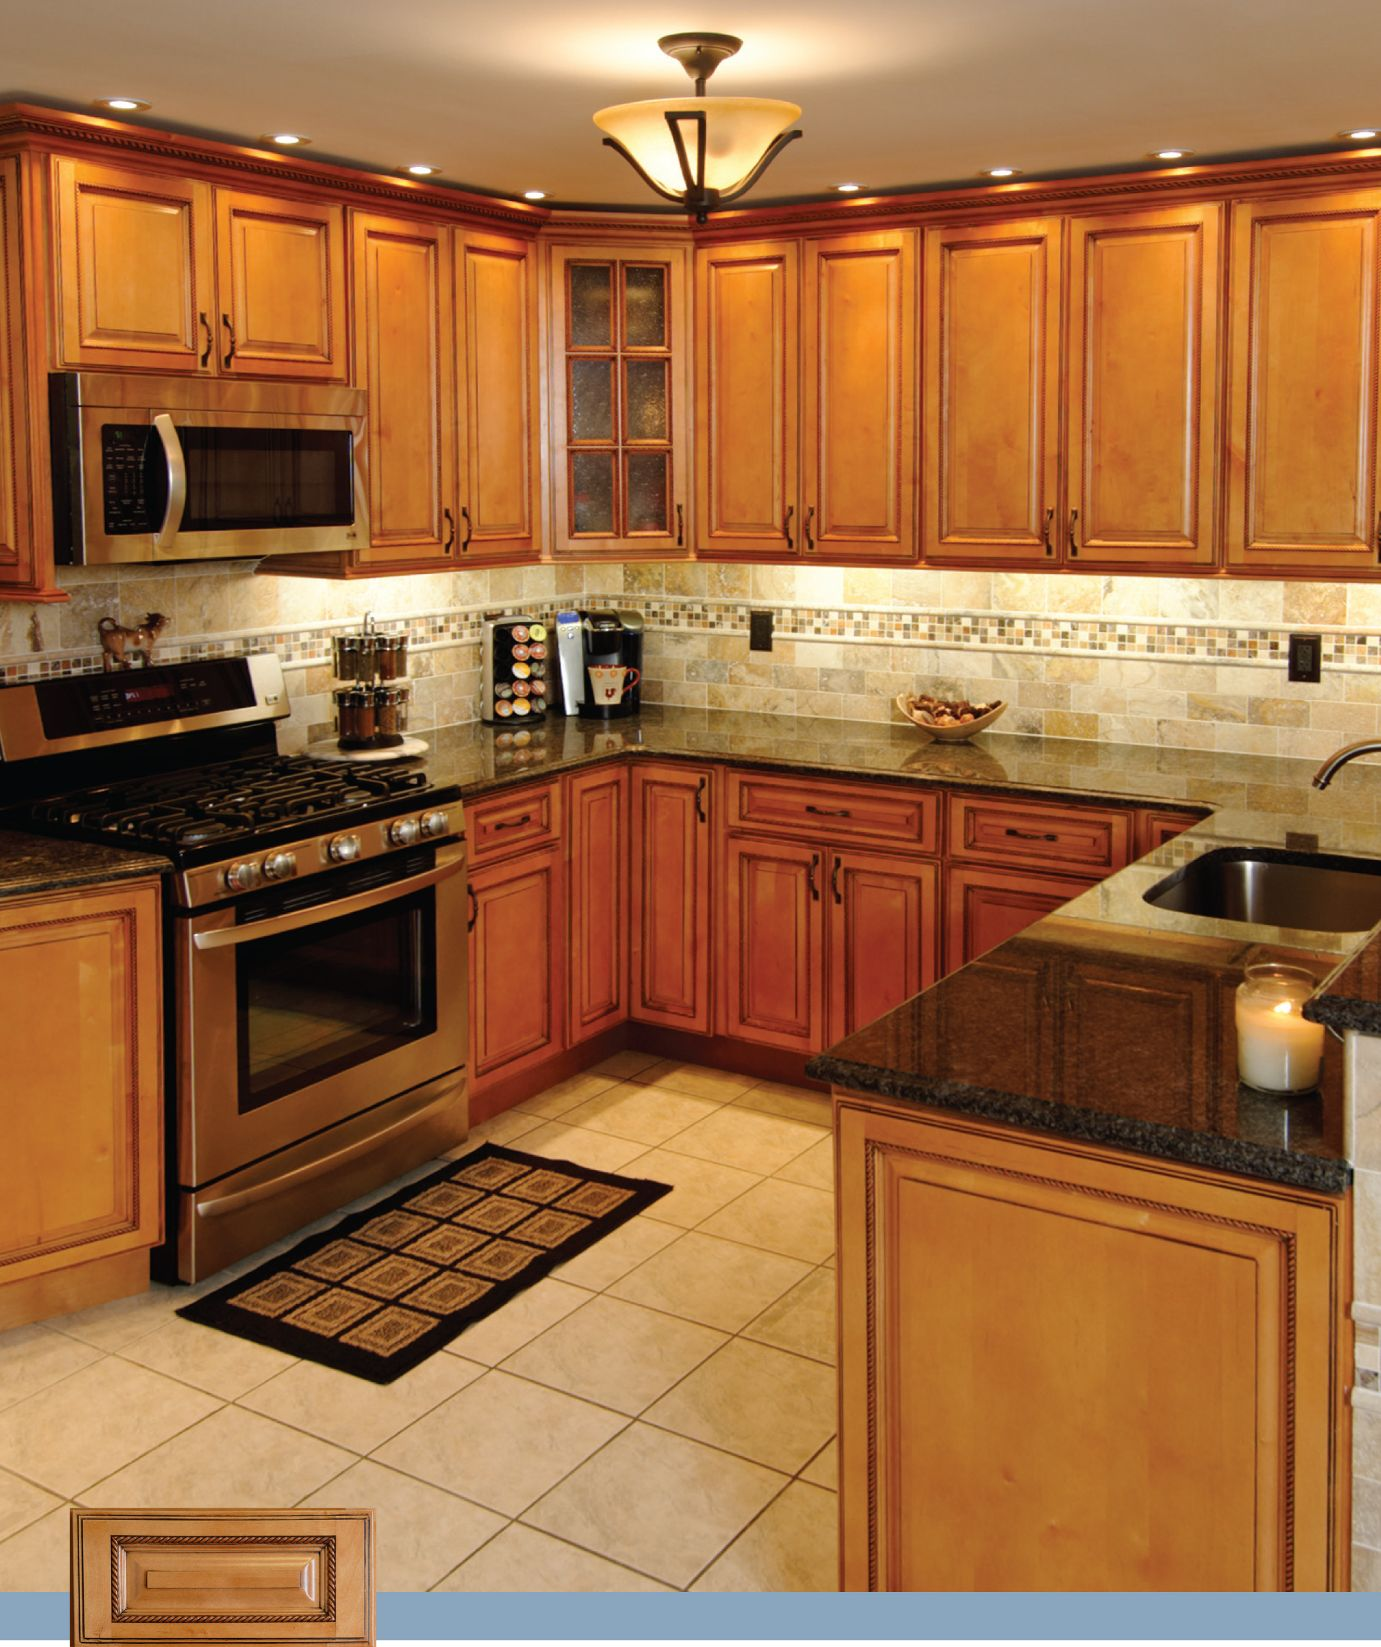 Magnificent Oak Kitchen Cabinets with Granite Countertops 1381 x 1647 · 296 kB · jpeg